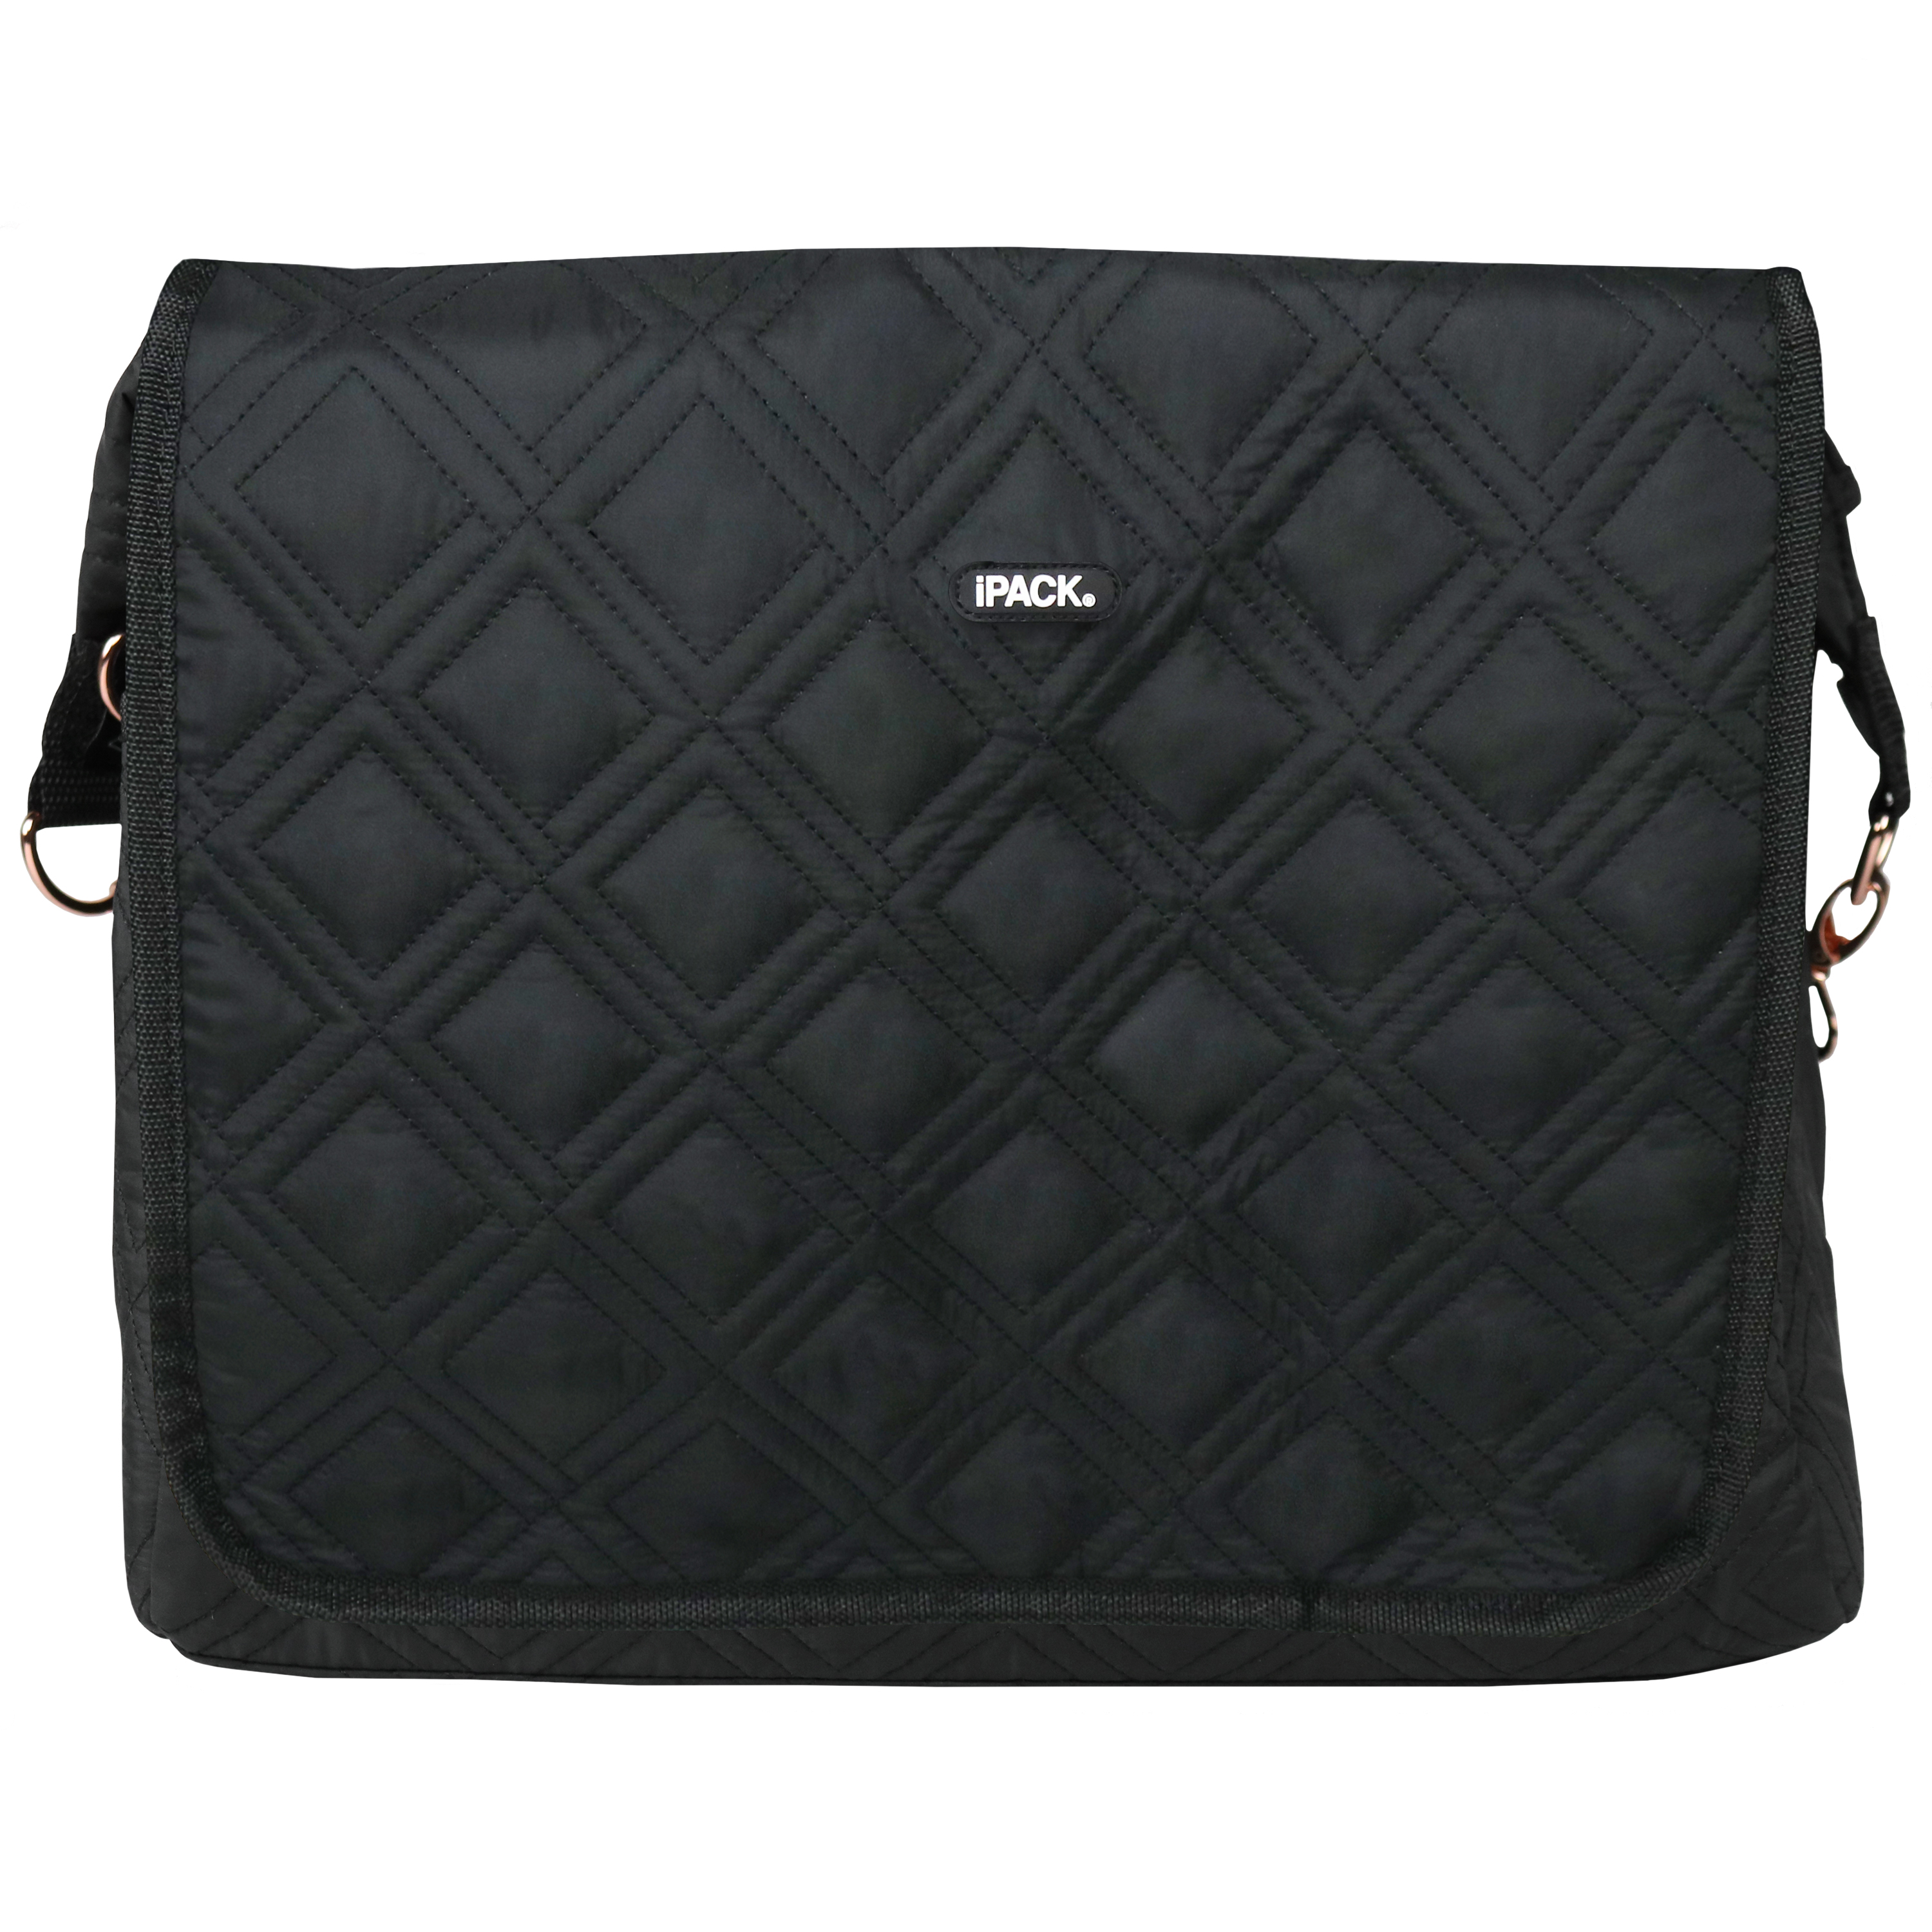 iPack Baby Black Quilted Diaper Bag with Changing Pad